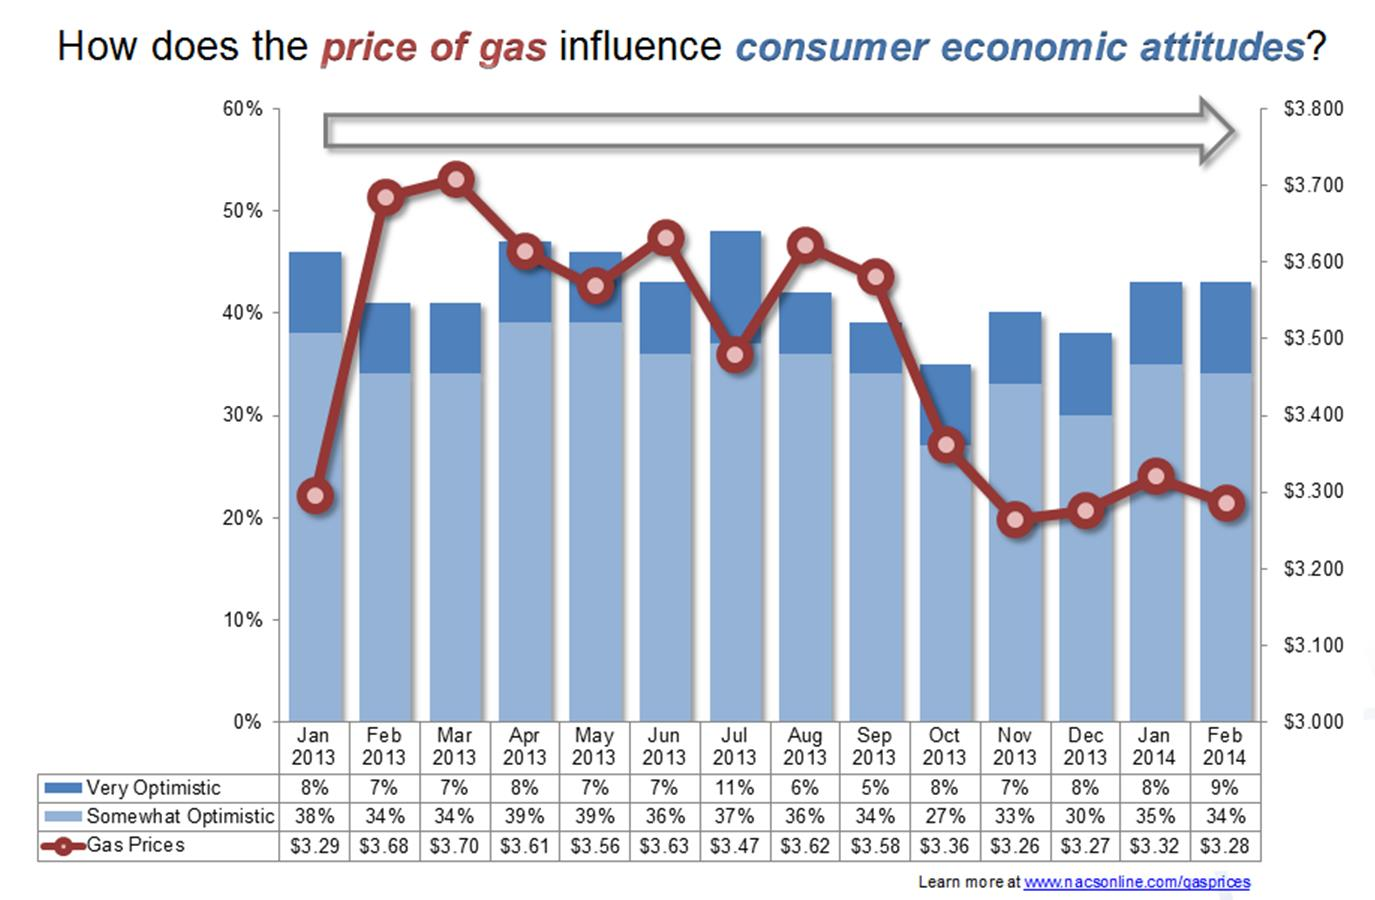 NACS Consumer Fuels Survey Consumer optimism about the economy continues to inch upward after bottoming out in October 2013